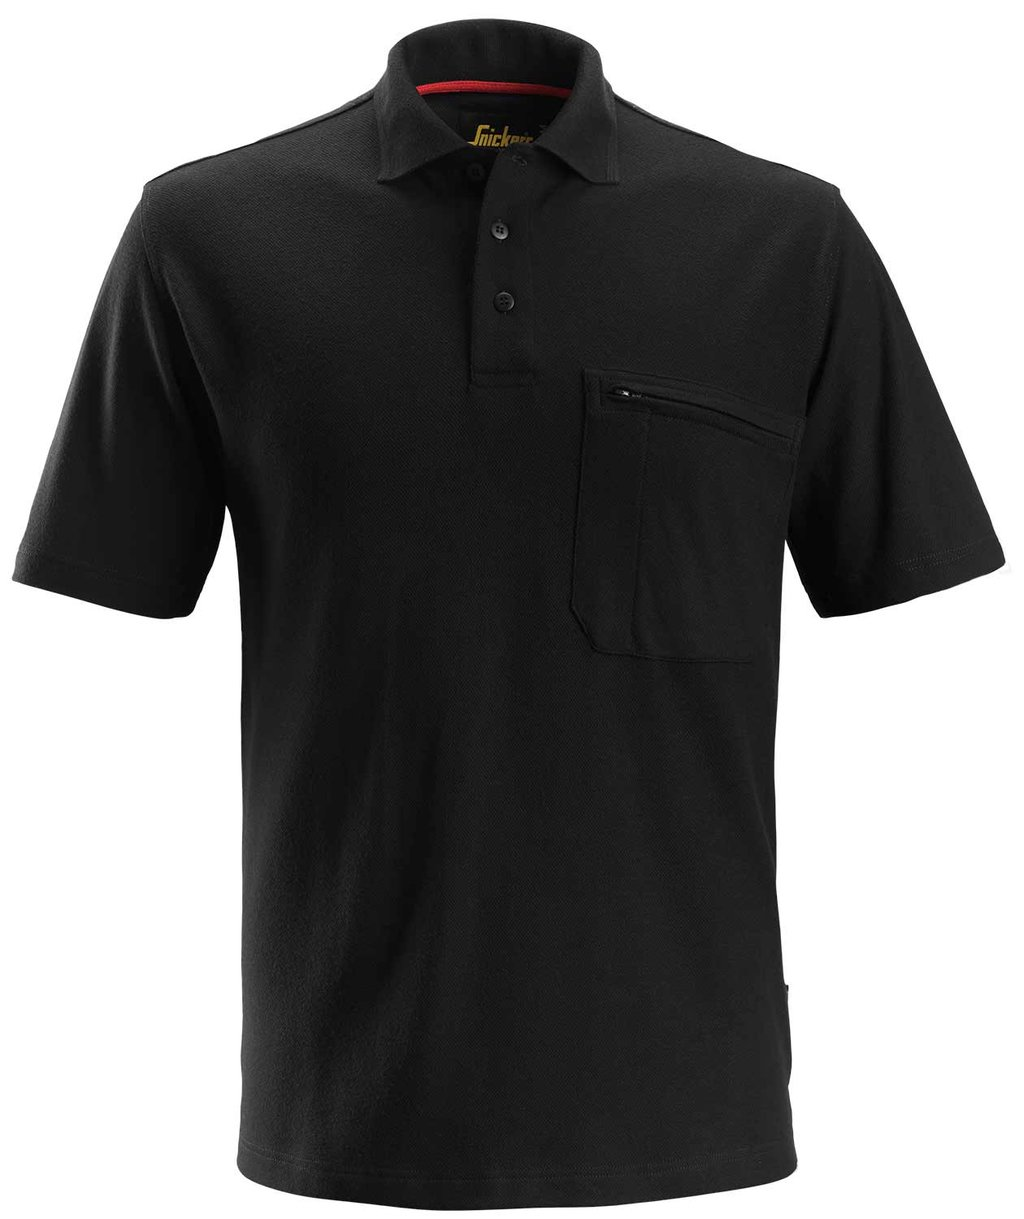 Snickers ProtecWork polo shirt, Black